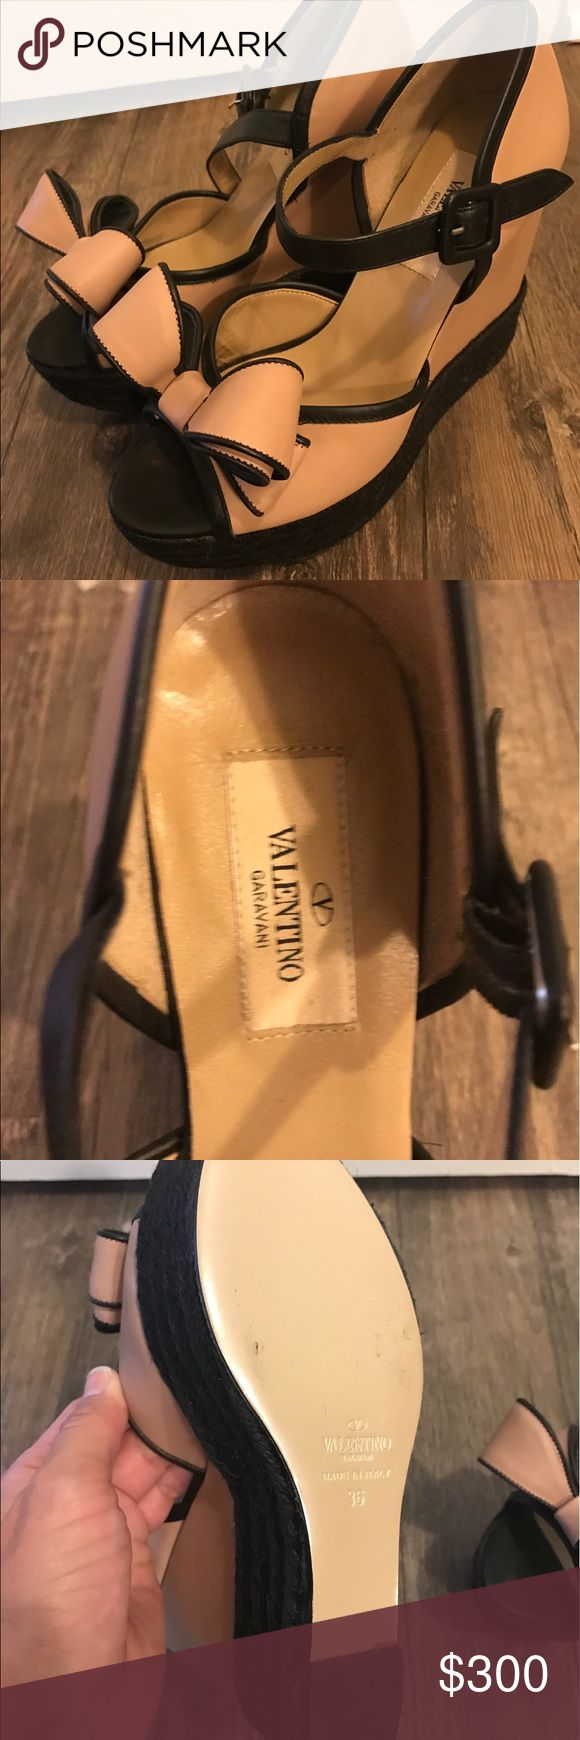 Valentino wedge pink size 36 (6) Pink and black Auth Valentino wedge. Worn once inside. Too tight for me. Beyond adorable, hard to let them go. Only imperfection is small black dot shown in last photo. These are beauties! Valentino Shoes Wedges